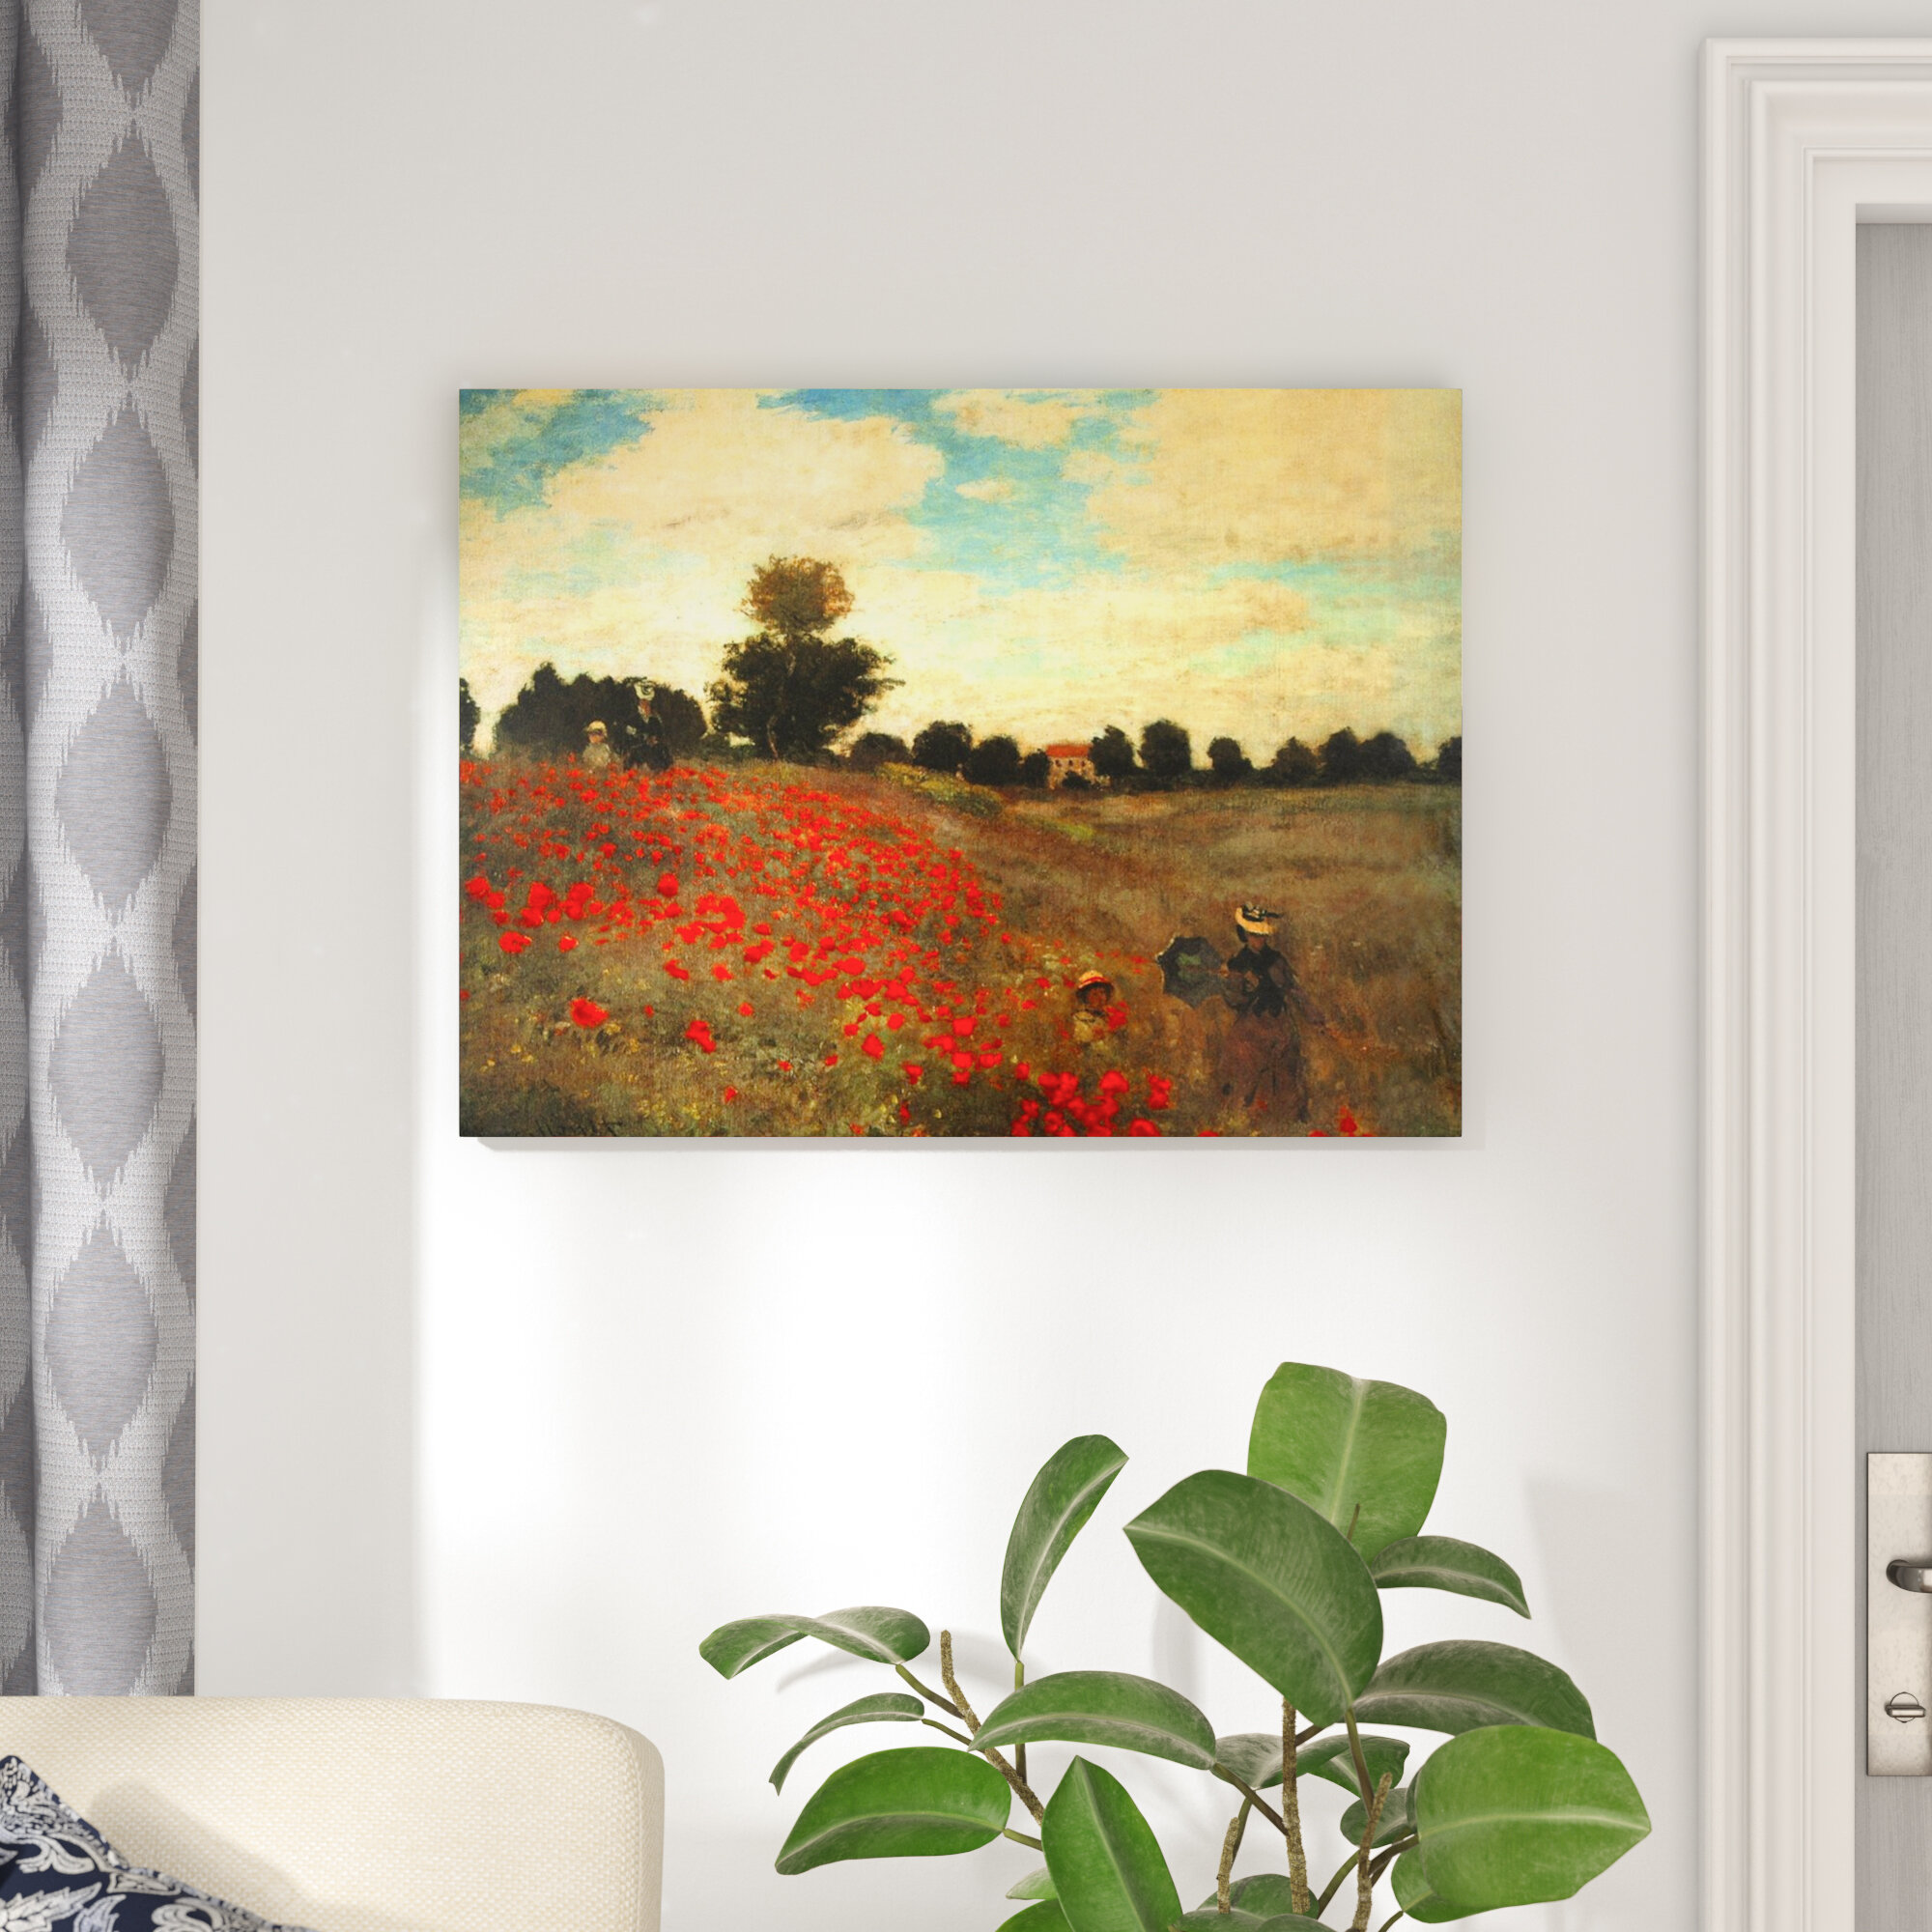 Vault W Artwork Poppies By Claude Monet Painting Wrapped Canvas Print Reviews Wayfair